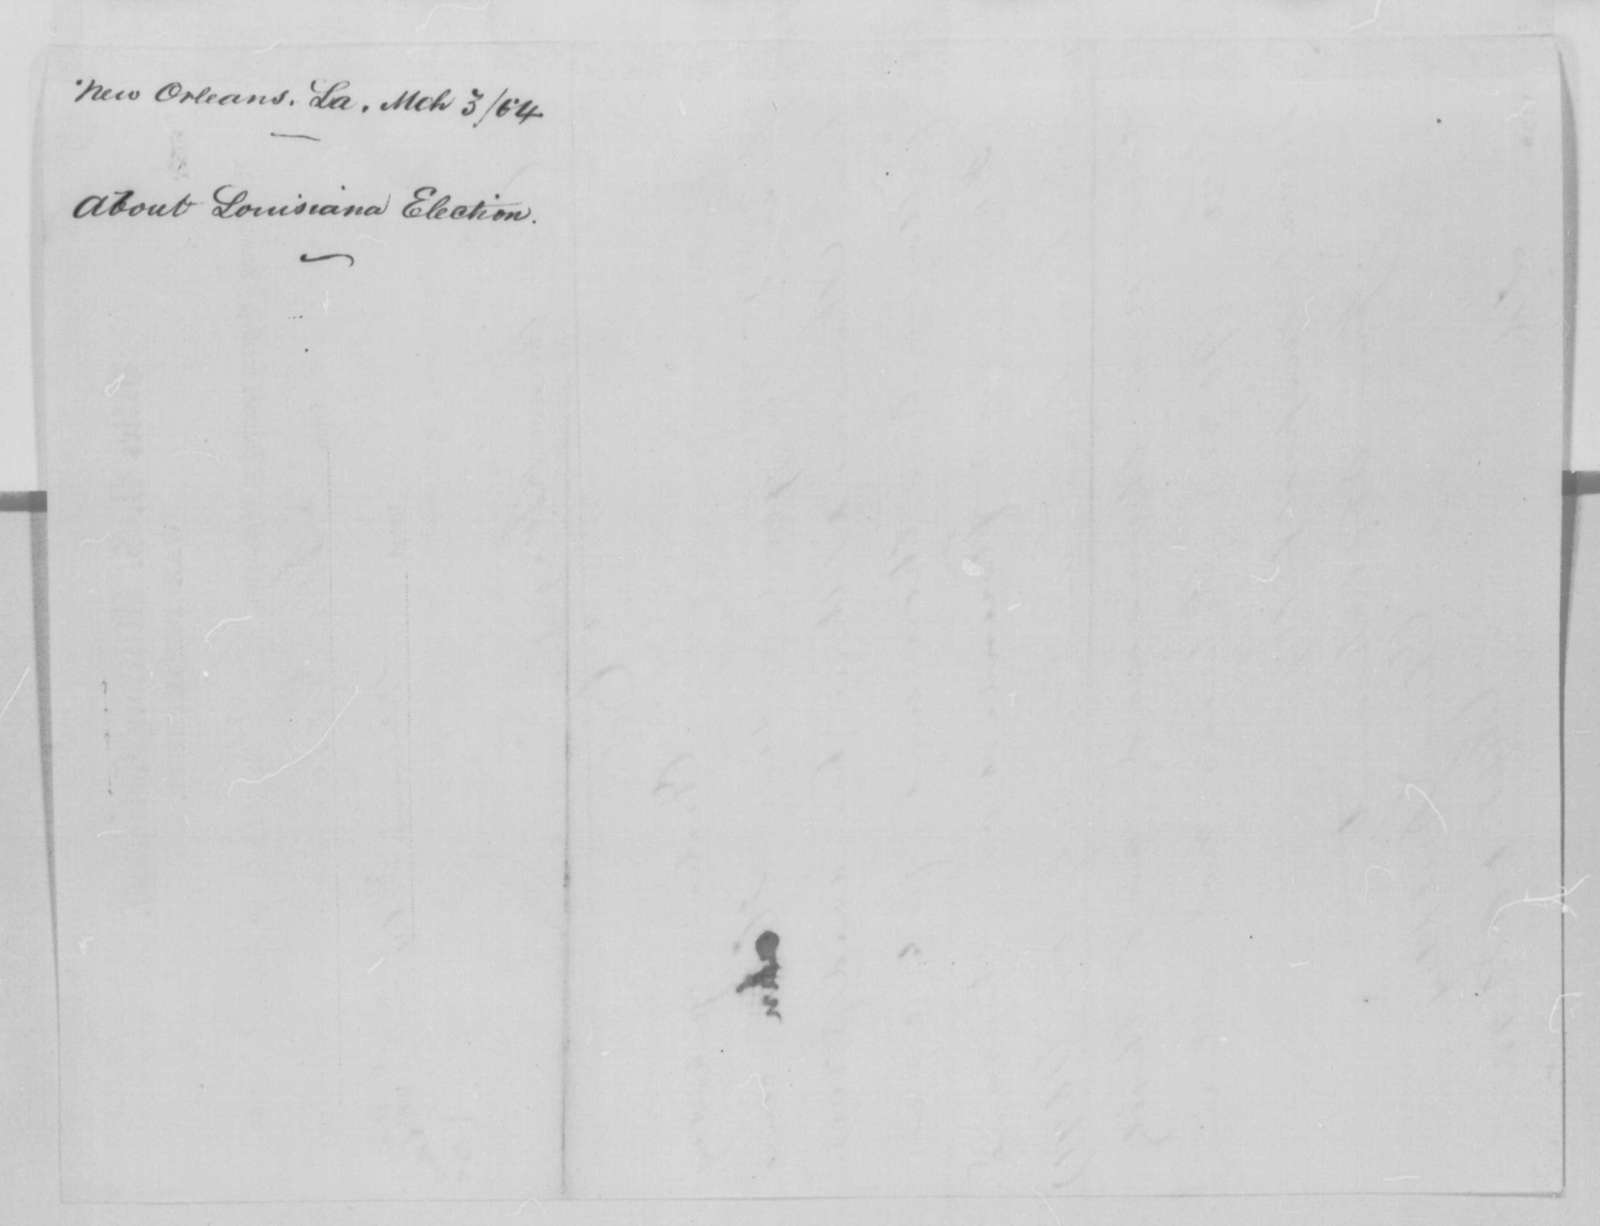 Charles S. Bulkley to Anson Stager, Tuesday, February 23, 1864  (Telegram reporting Louisiana election results)